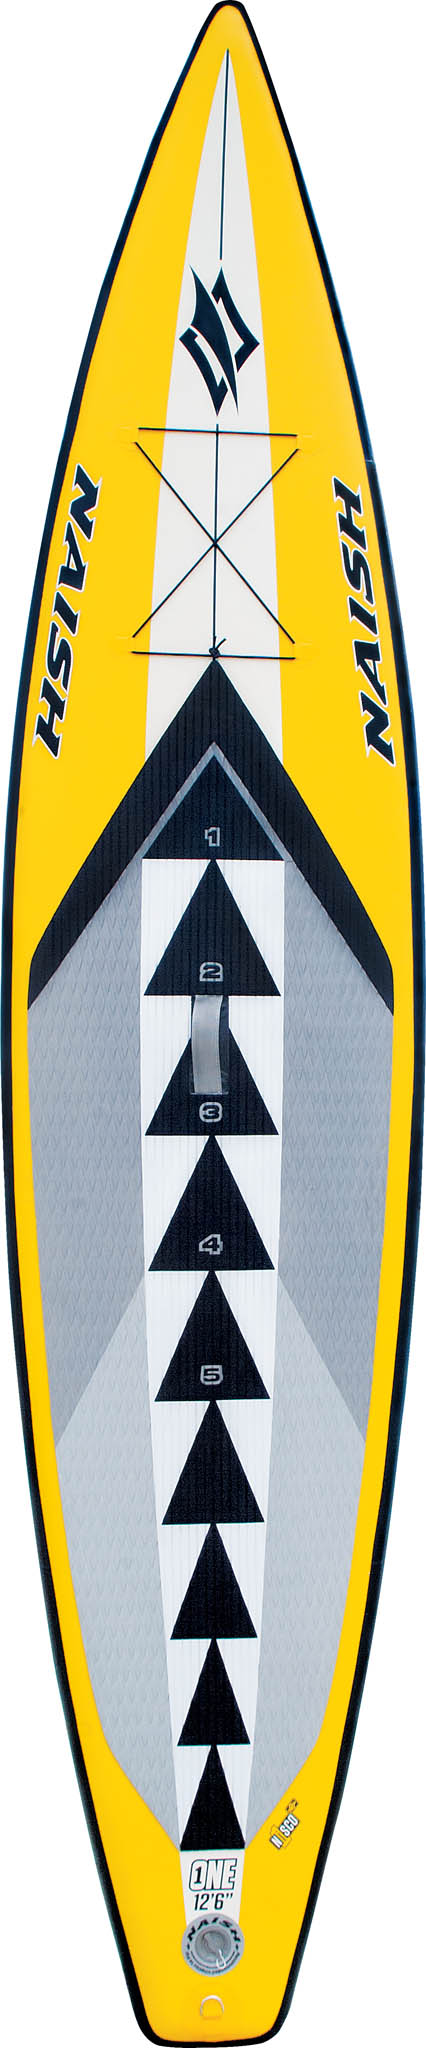 "The Naish One Nisco 12'6"" is hands down, the best-selling inflatable SUP around the world for all-around cruising, long-distance touring and N1SCO one design racing."